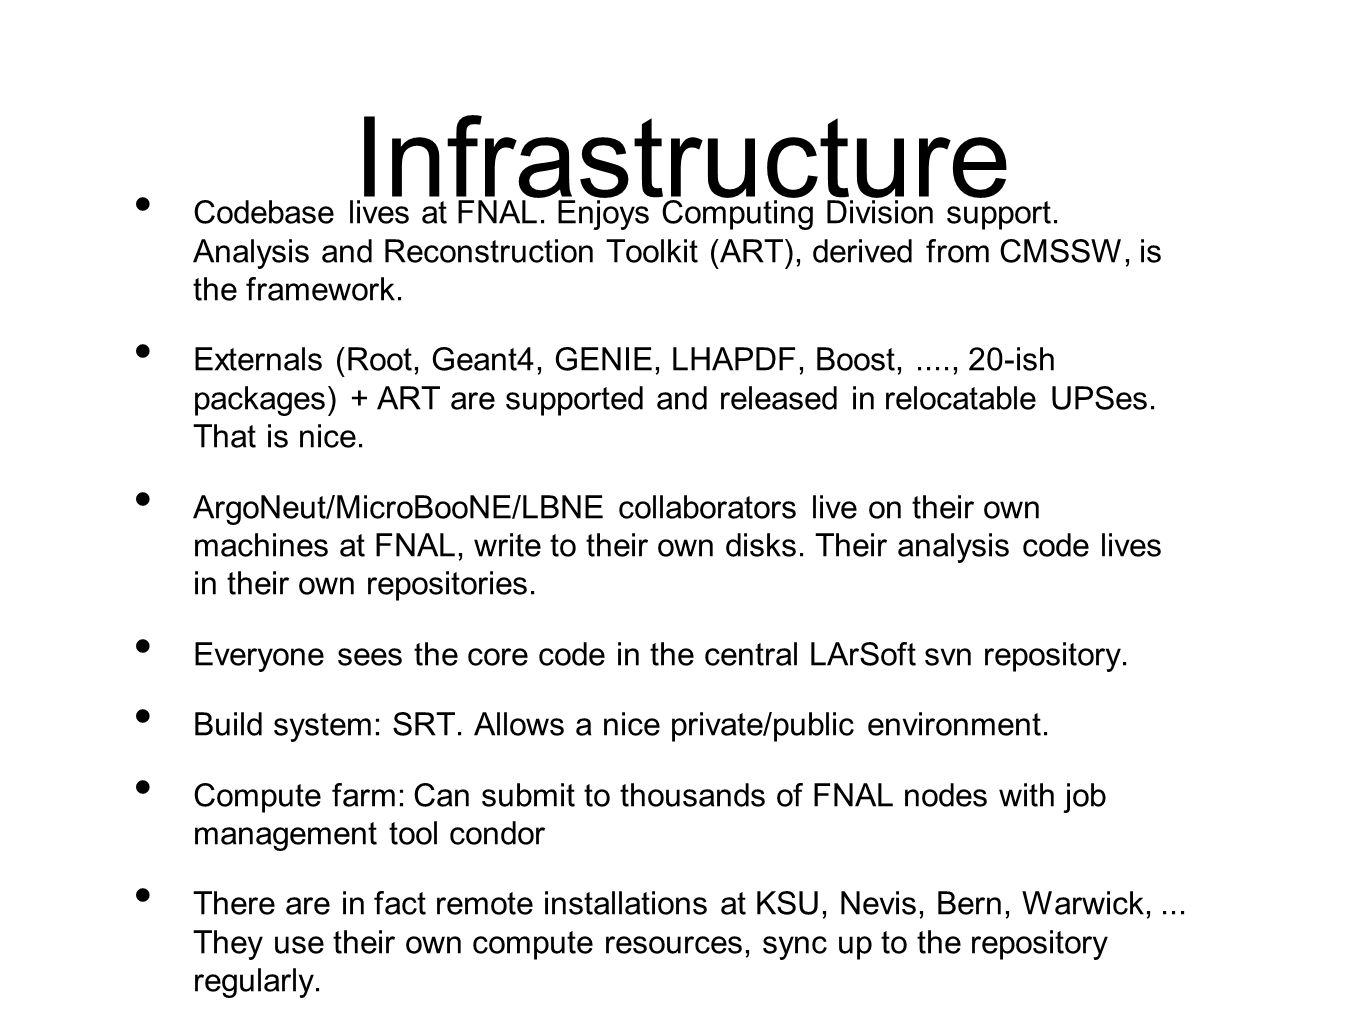 Infrastructure Codebase lives at FNAL. Enjoys Computing Division support.